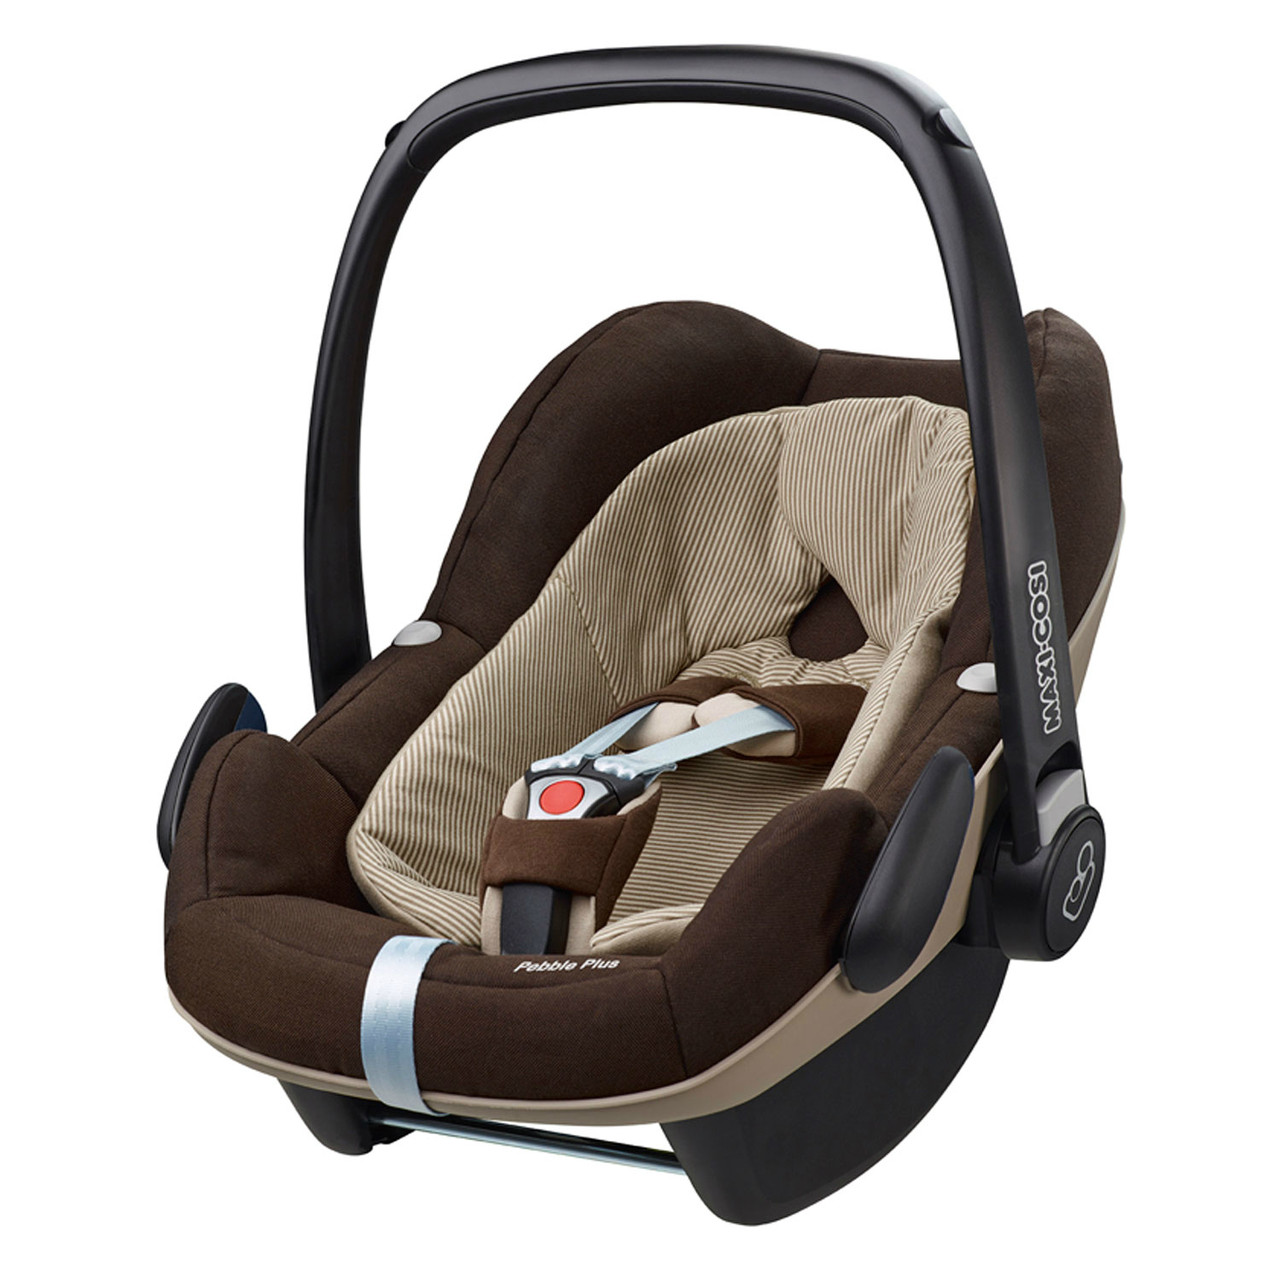 Автокресло Maxi Cosi Pebble Plus 0-13 кг (79878980) Earth Brown (коричневый)